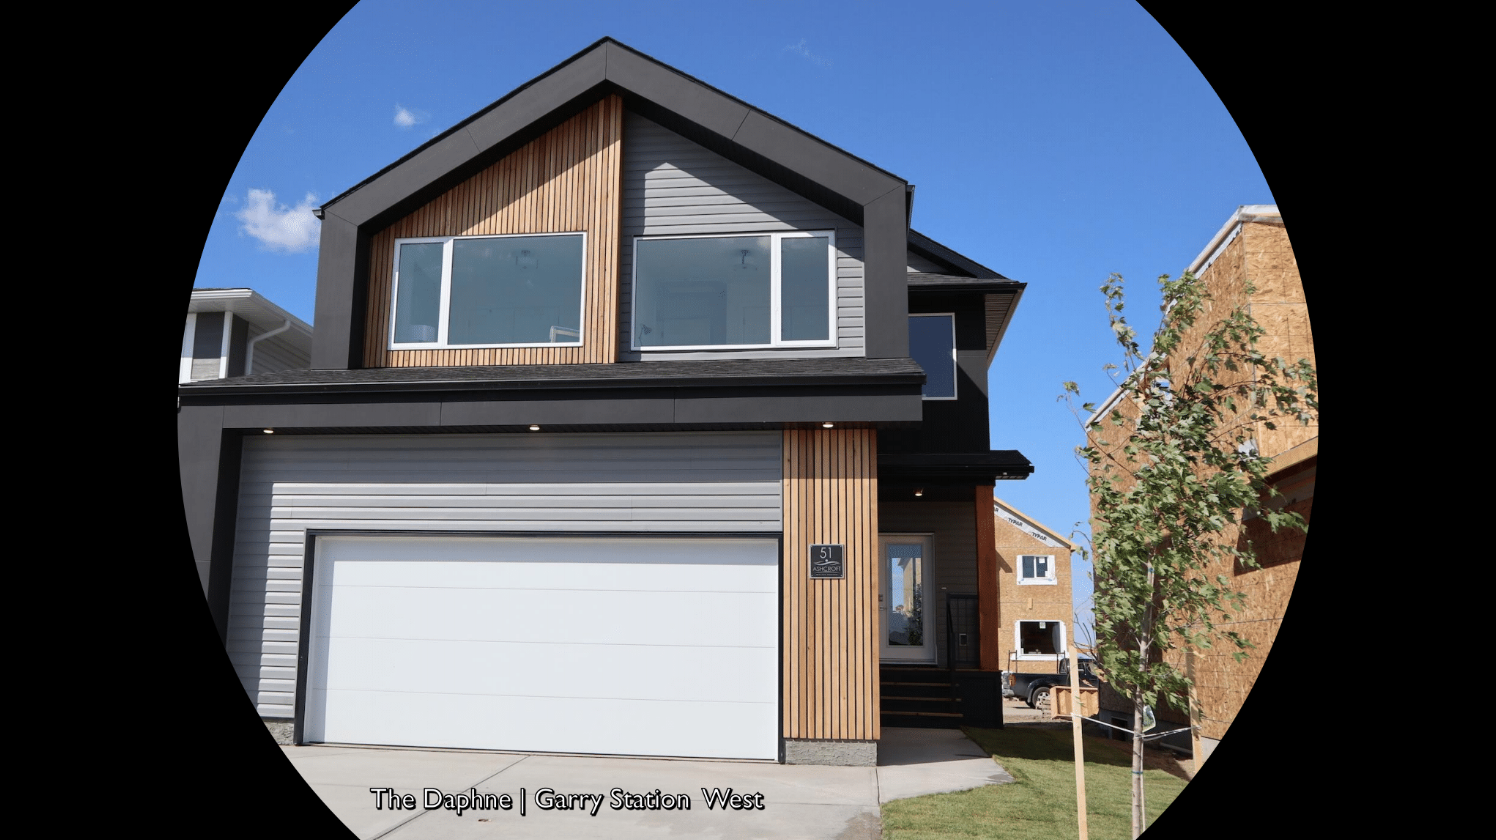 Single Family | $200,000 - $230,000 by Ashcroft Homes